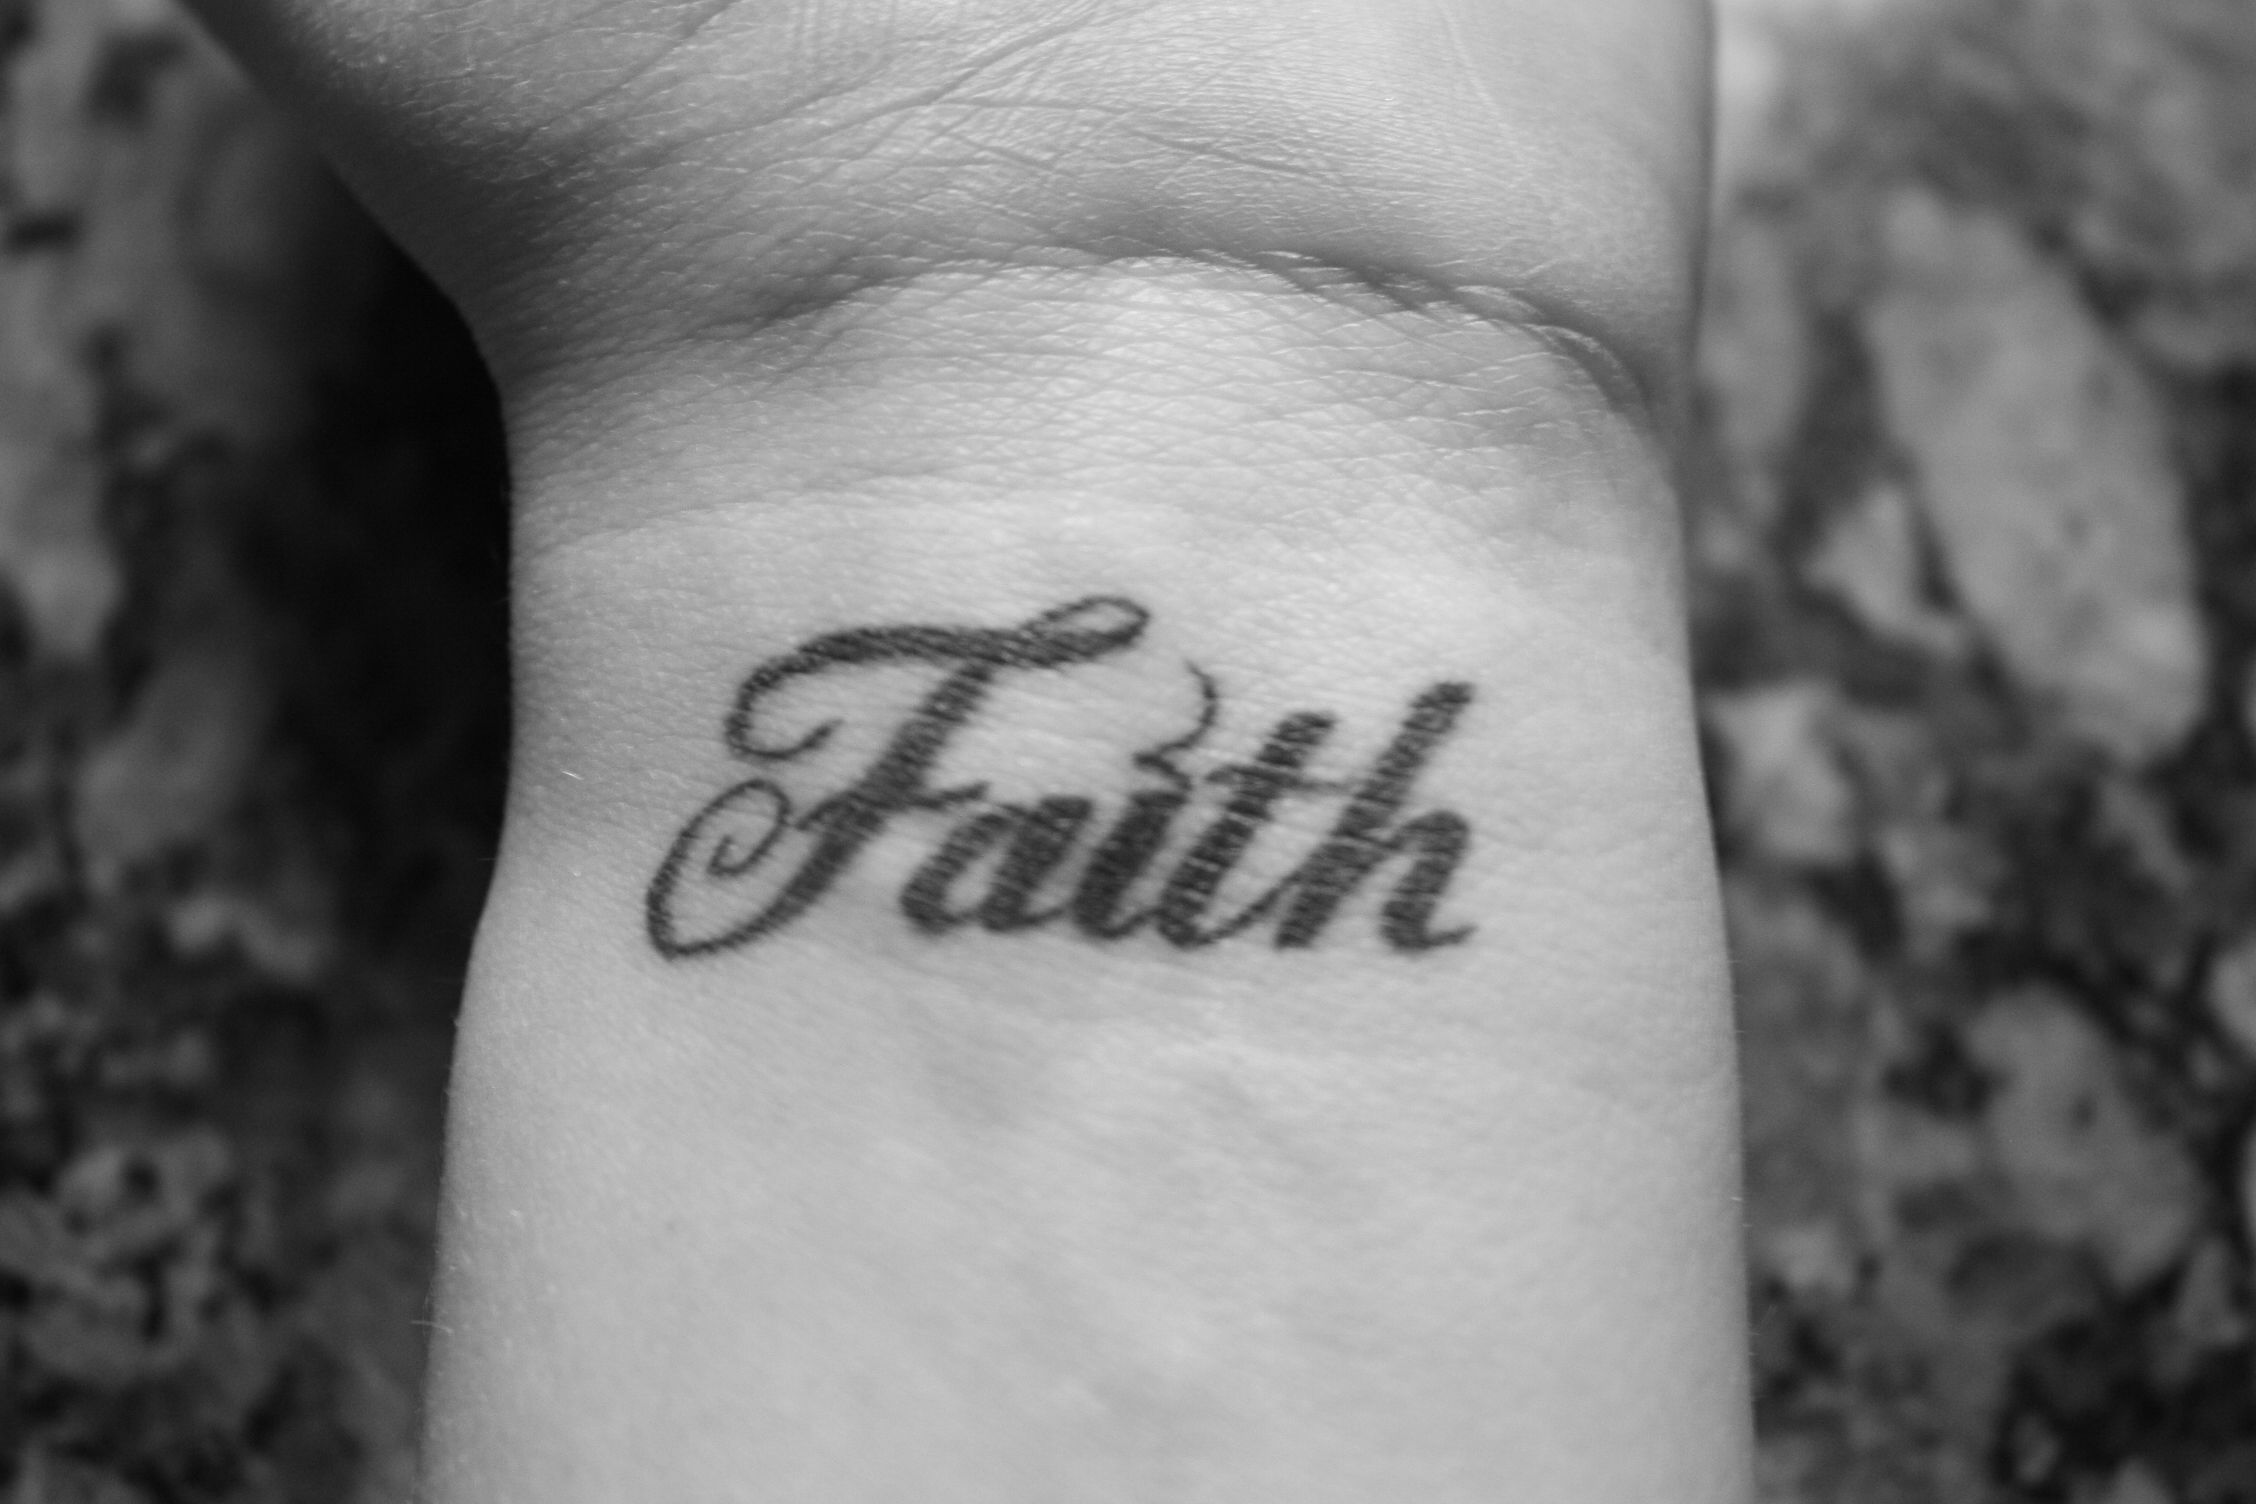 Faith, wrist tattoo on TattooChief.com | Wrist tattoos ...